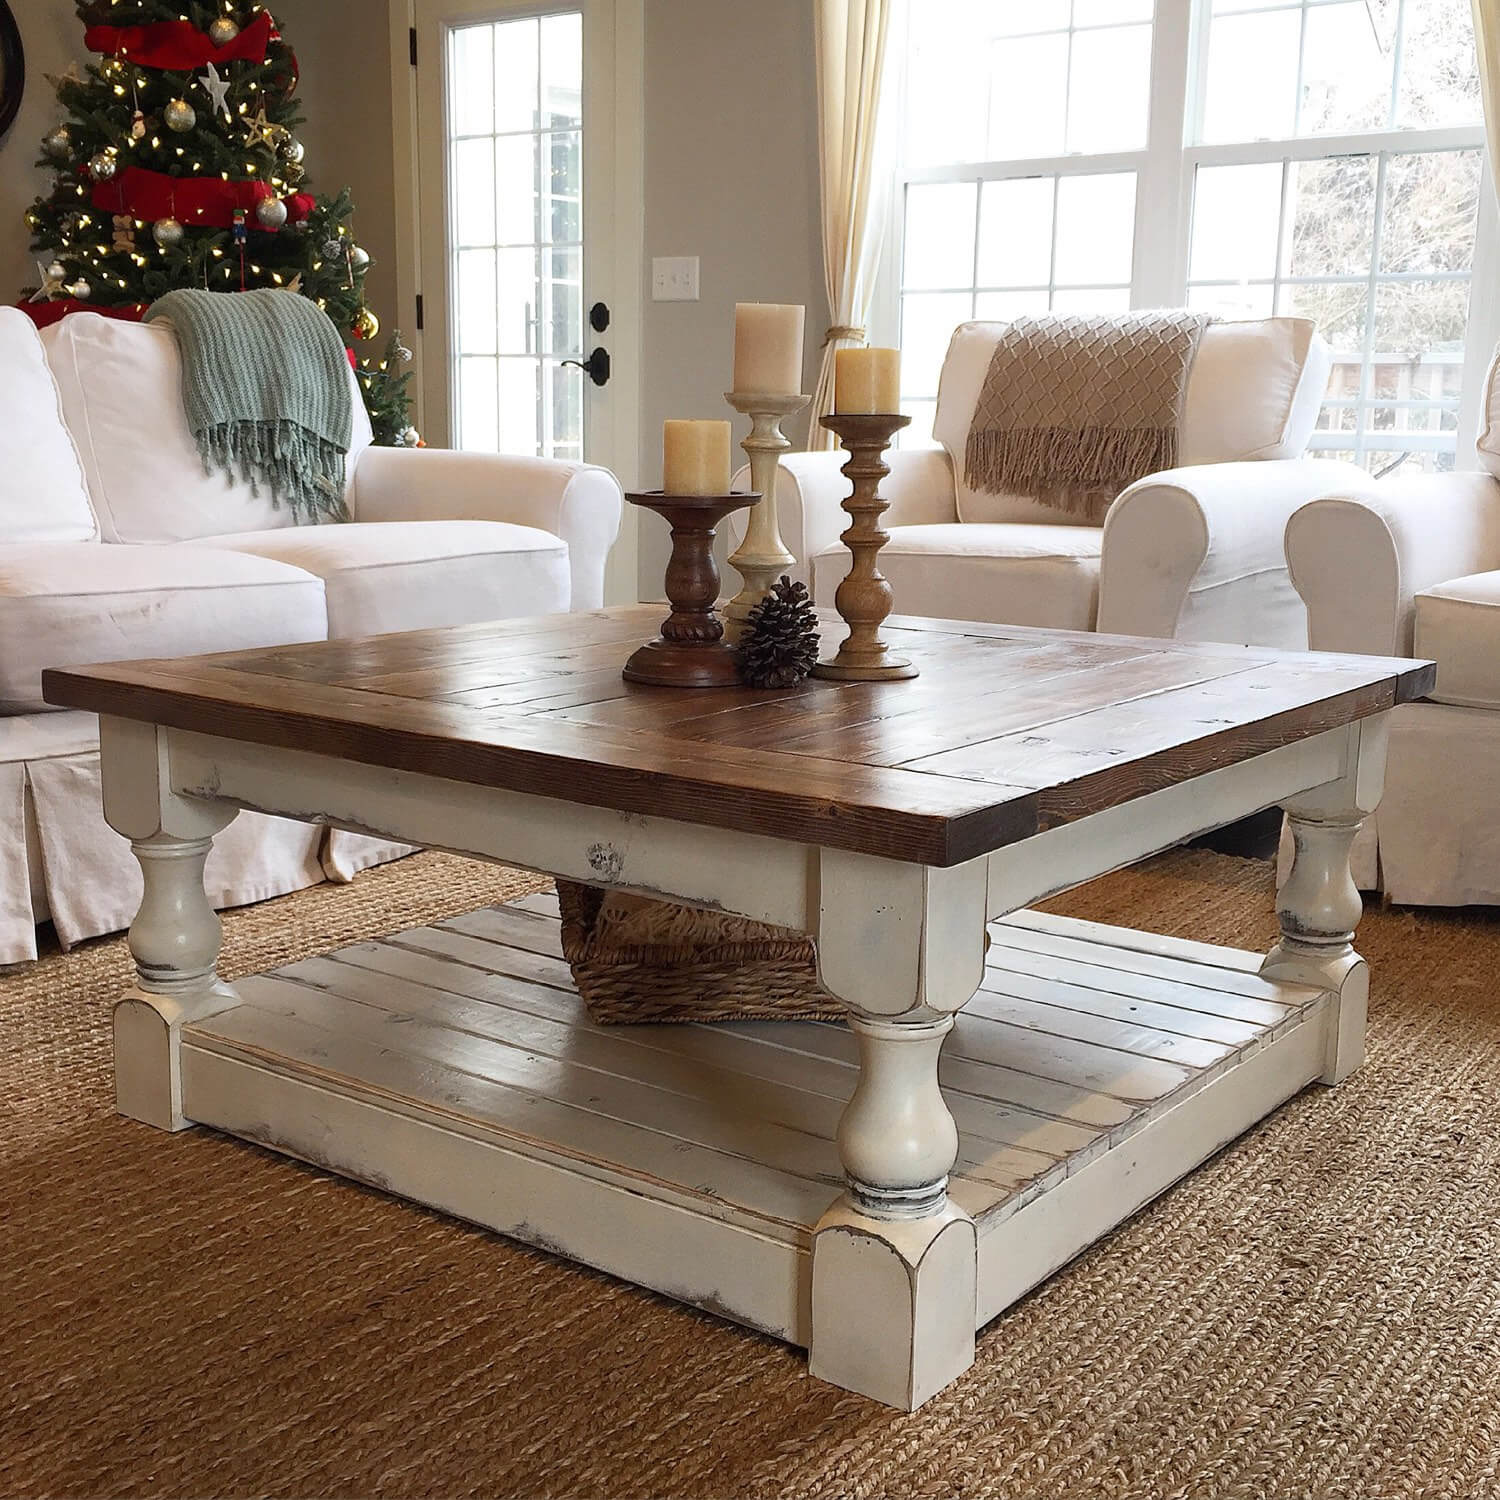 coffee table living room design sofa set small 37 best decorating ideas and designs for 2019 elegant solid wood topped with turned candlesticks